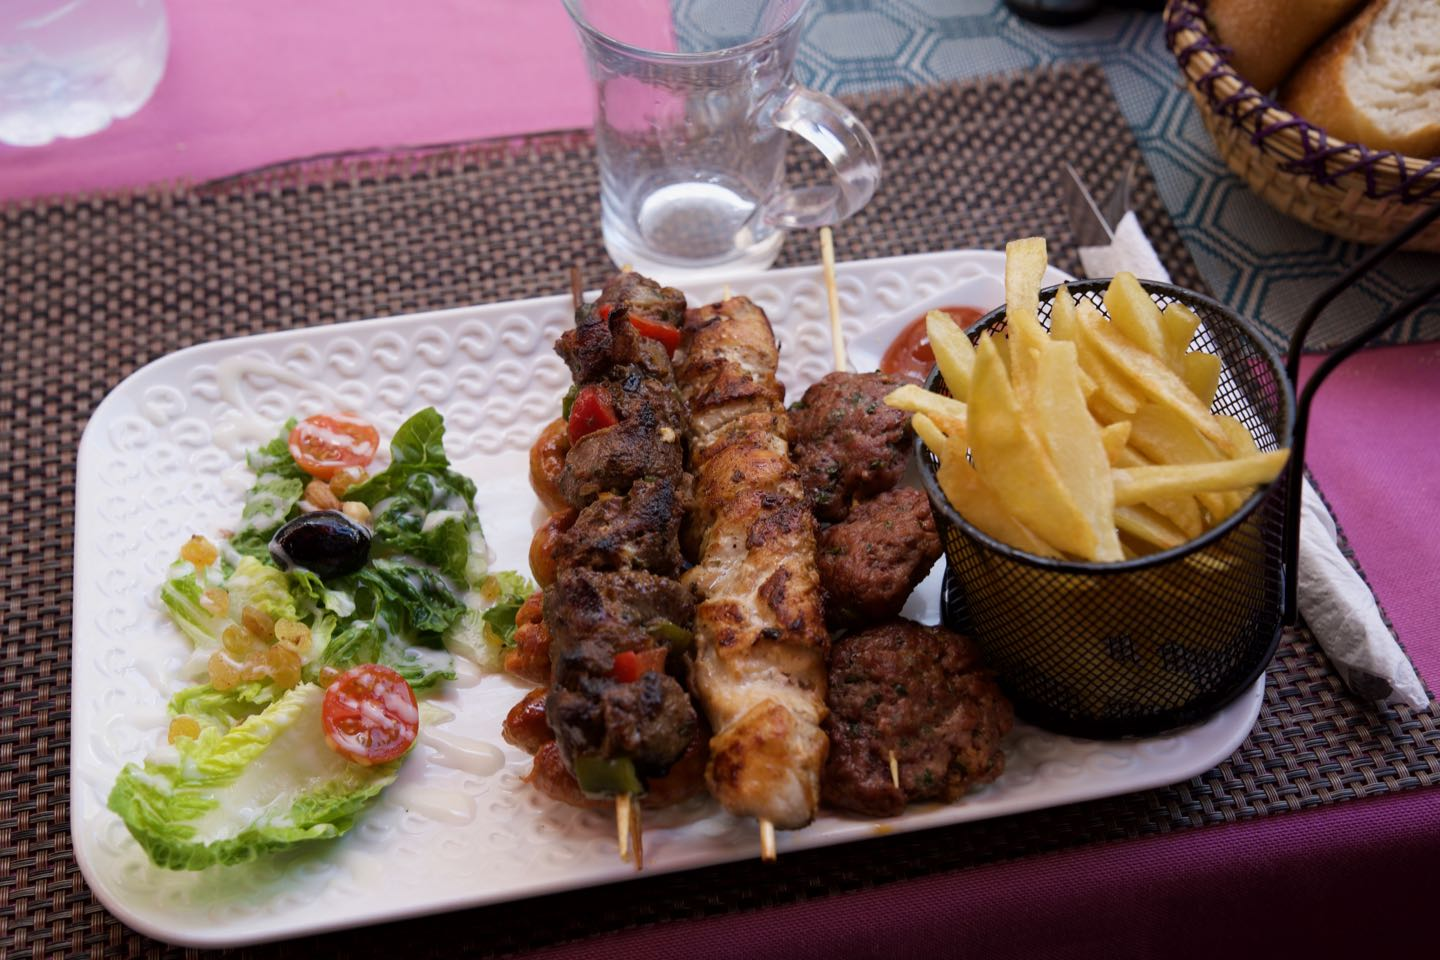 Kefta Brochettes and meat sticks from the restaurant Taraa Café.